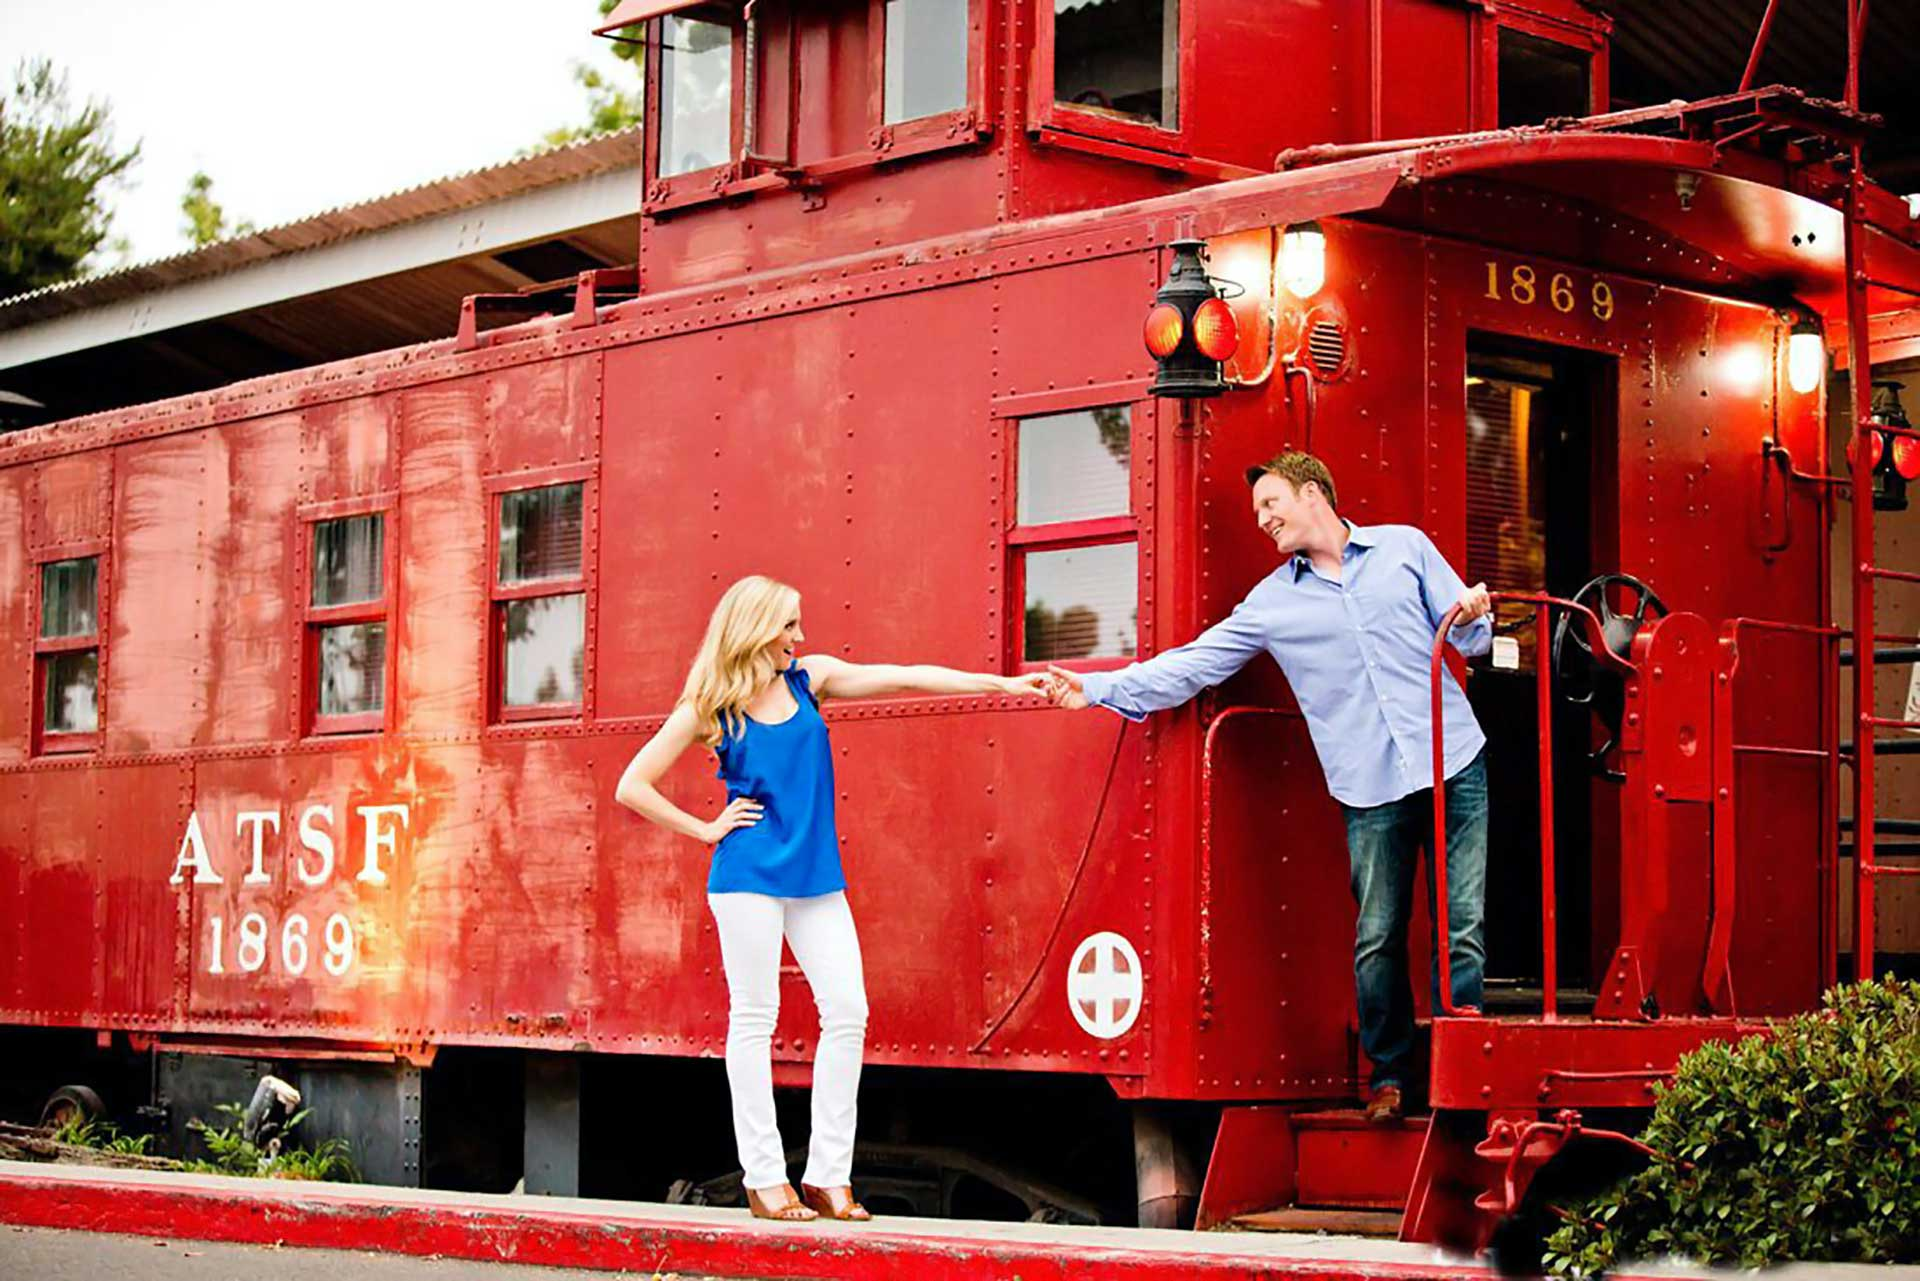 couple on train images